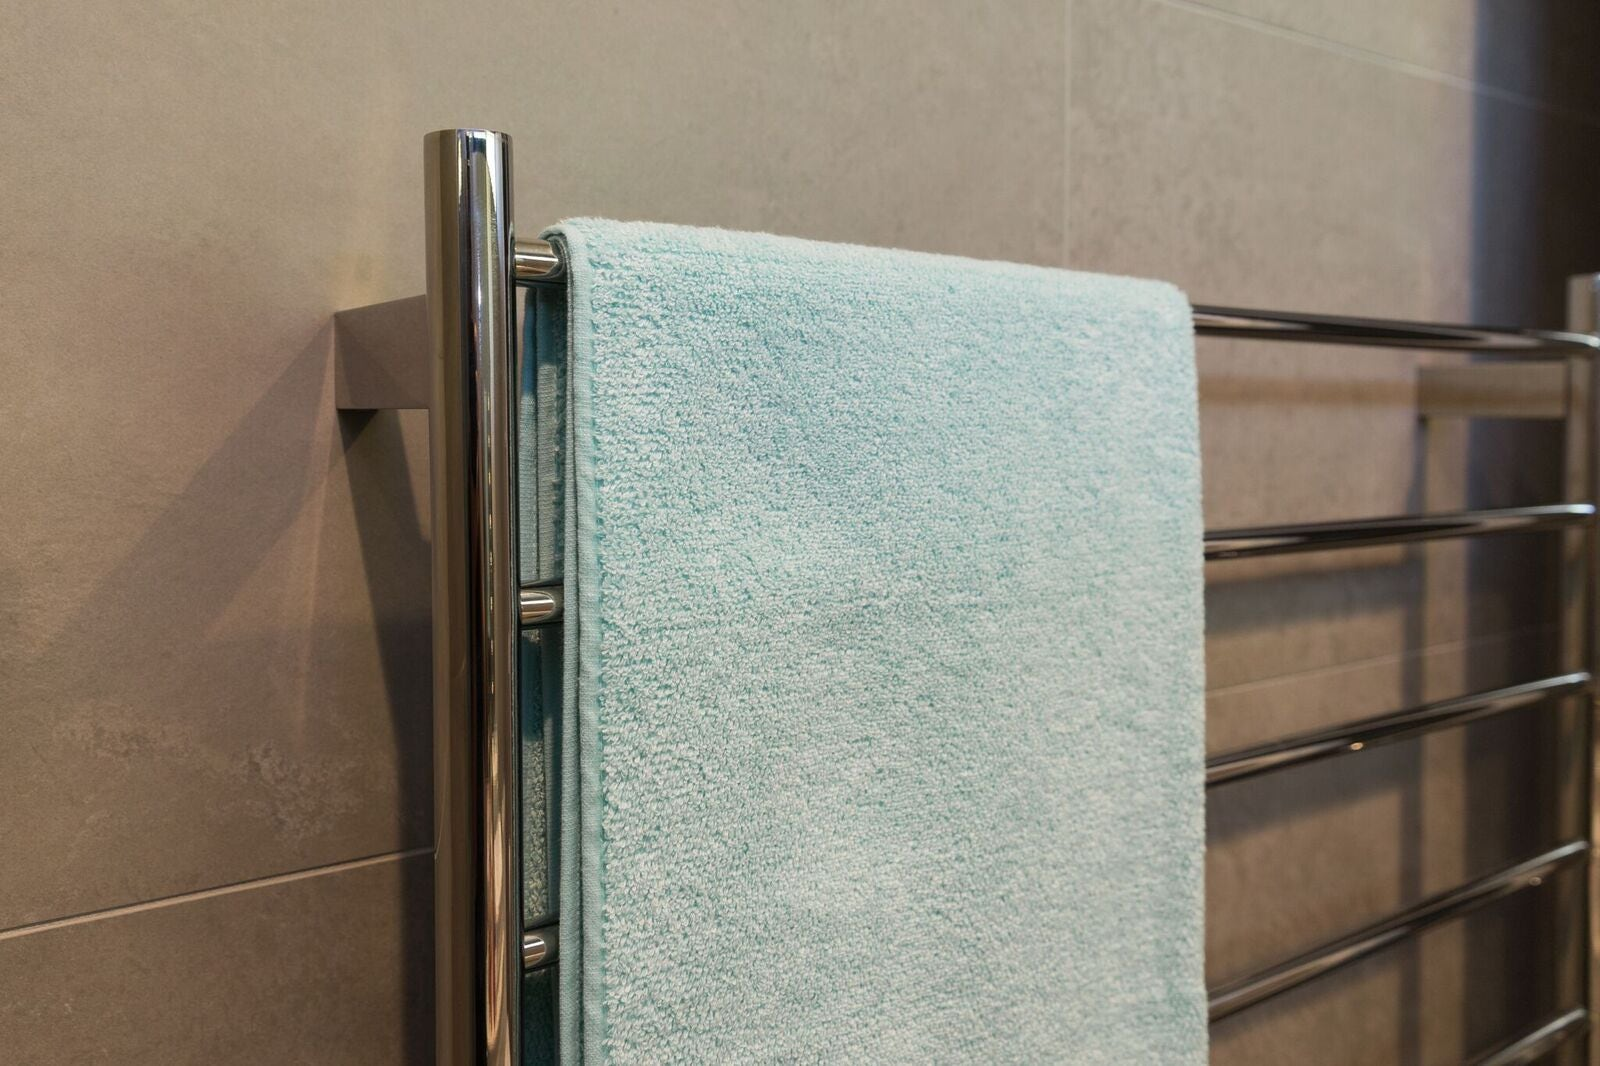 stainless-steel-round-tube-heated-towel-rail-zoom-in